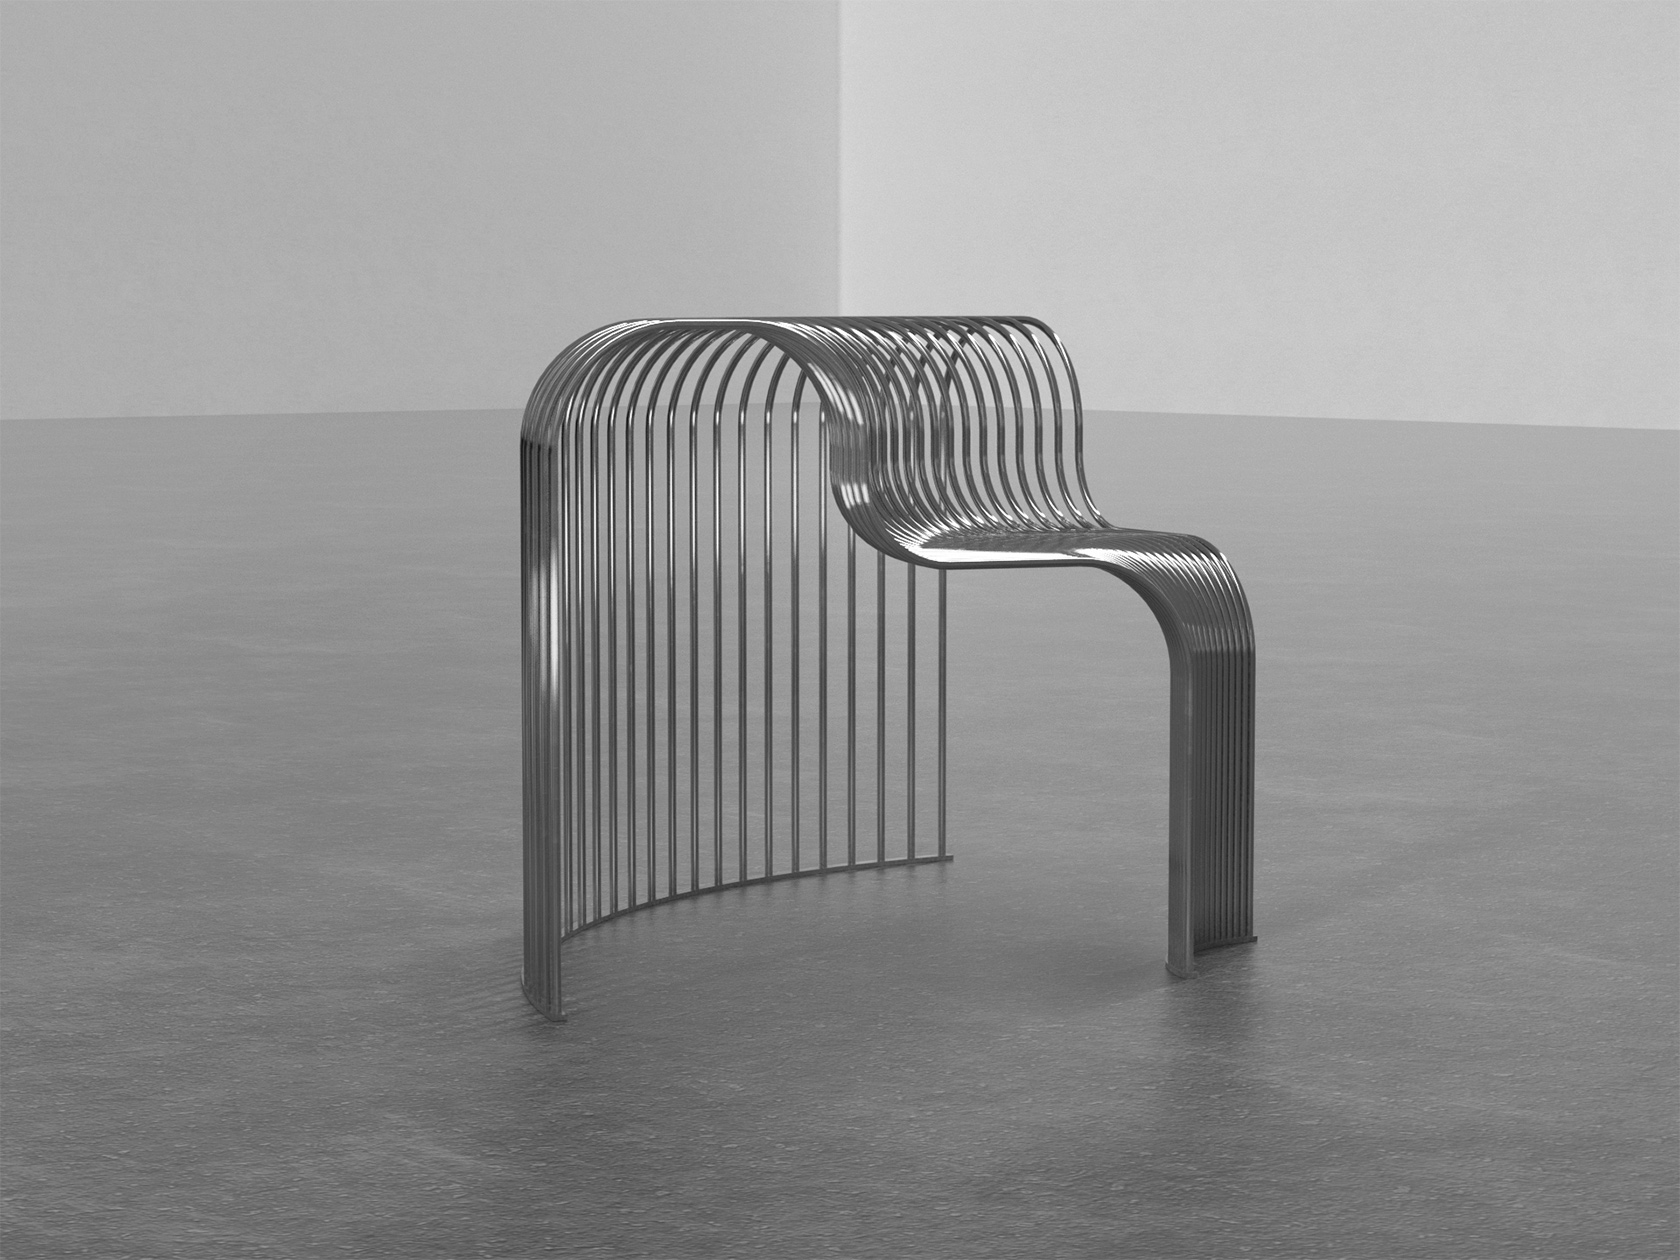 Mira Bergh and Josefin Zachrisson on Seats, a sculptural furniture system rethinking seats in the public environment